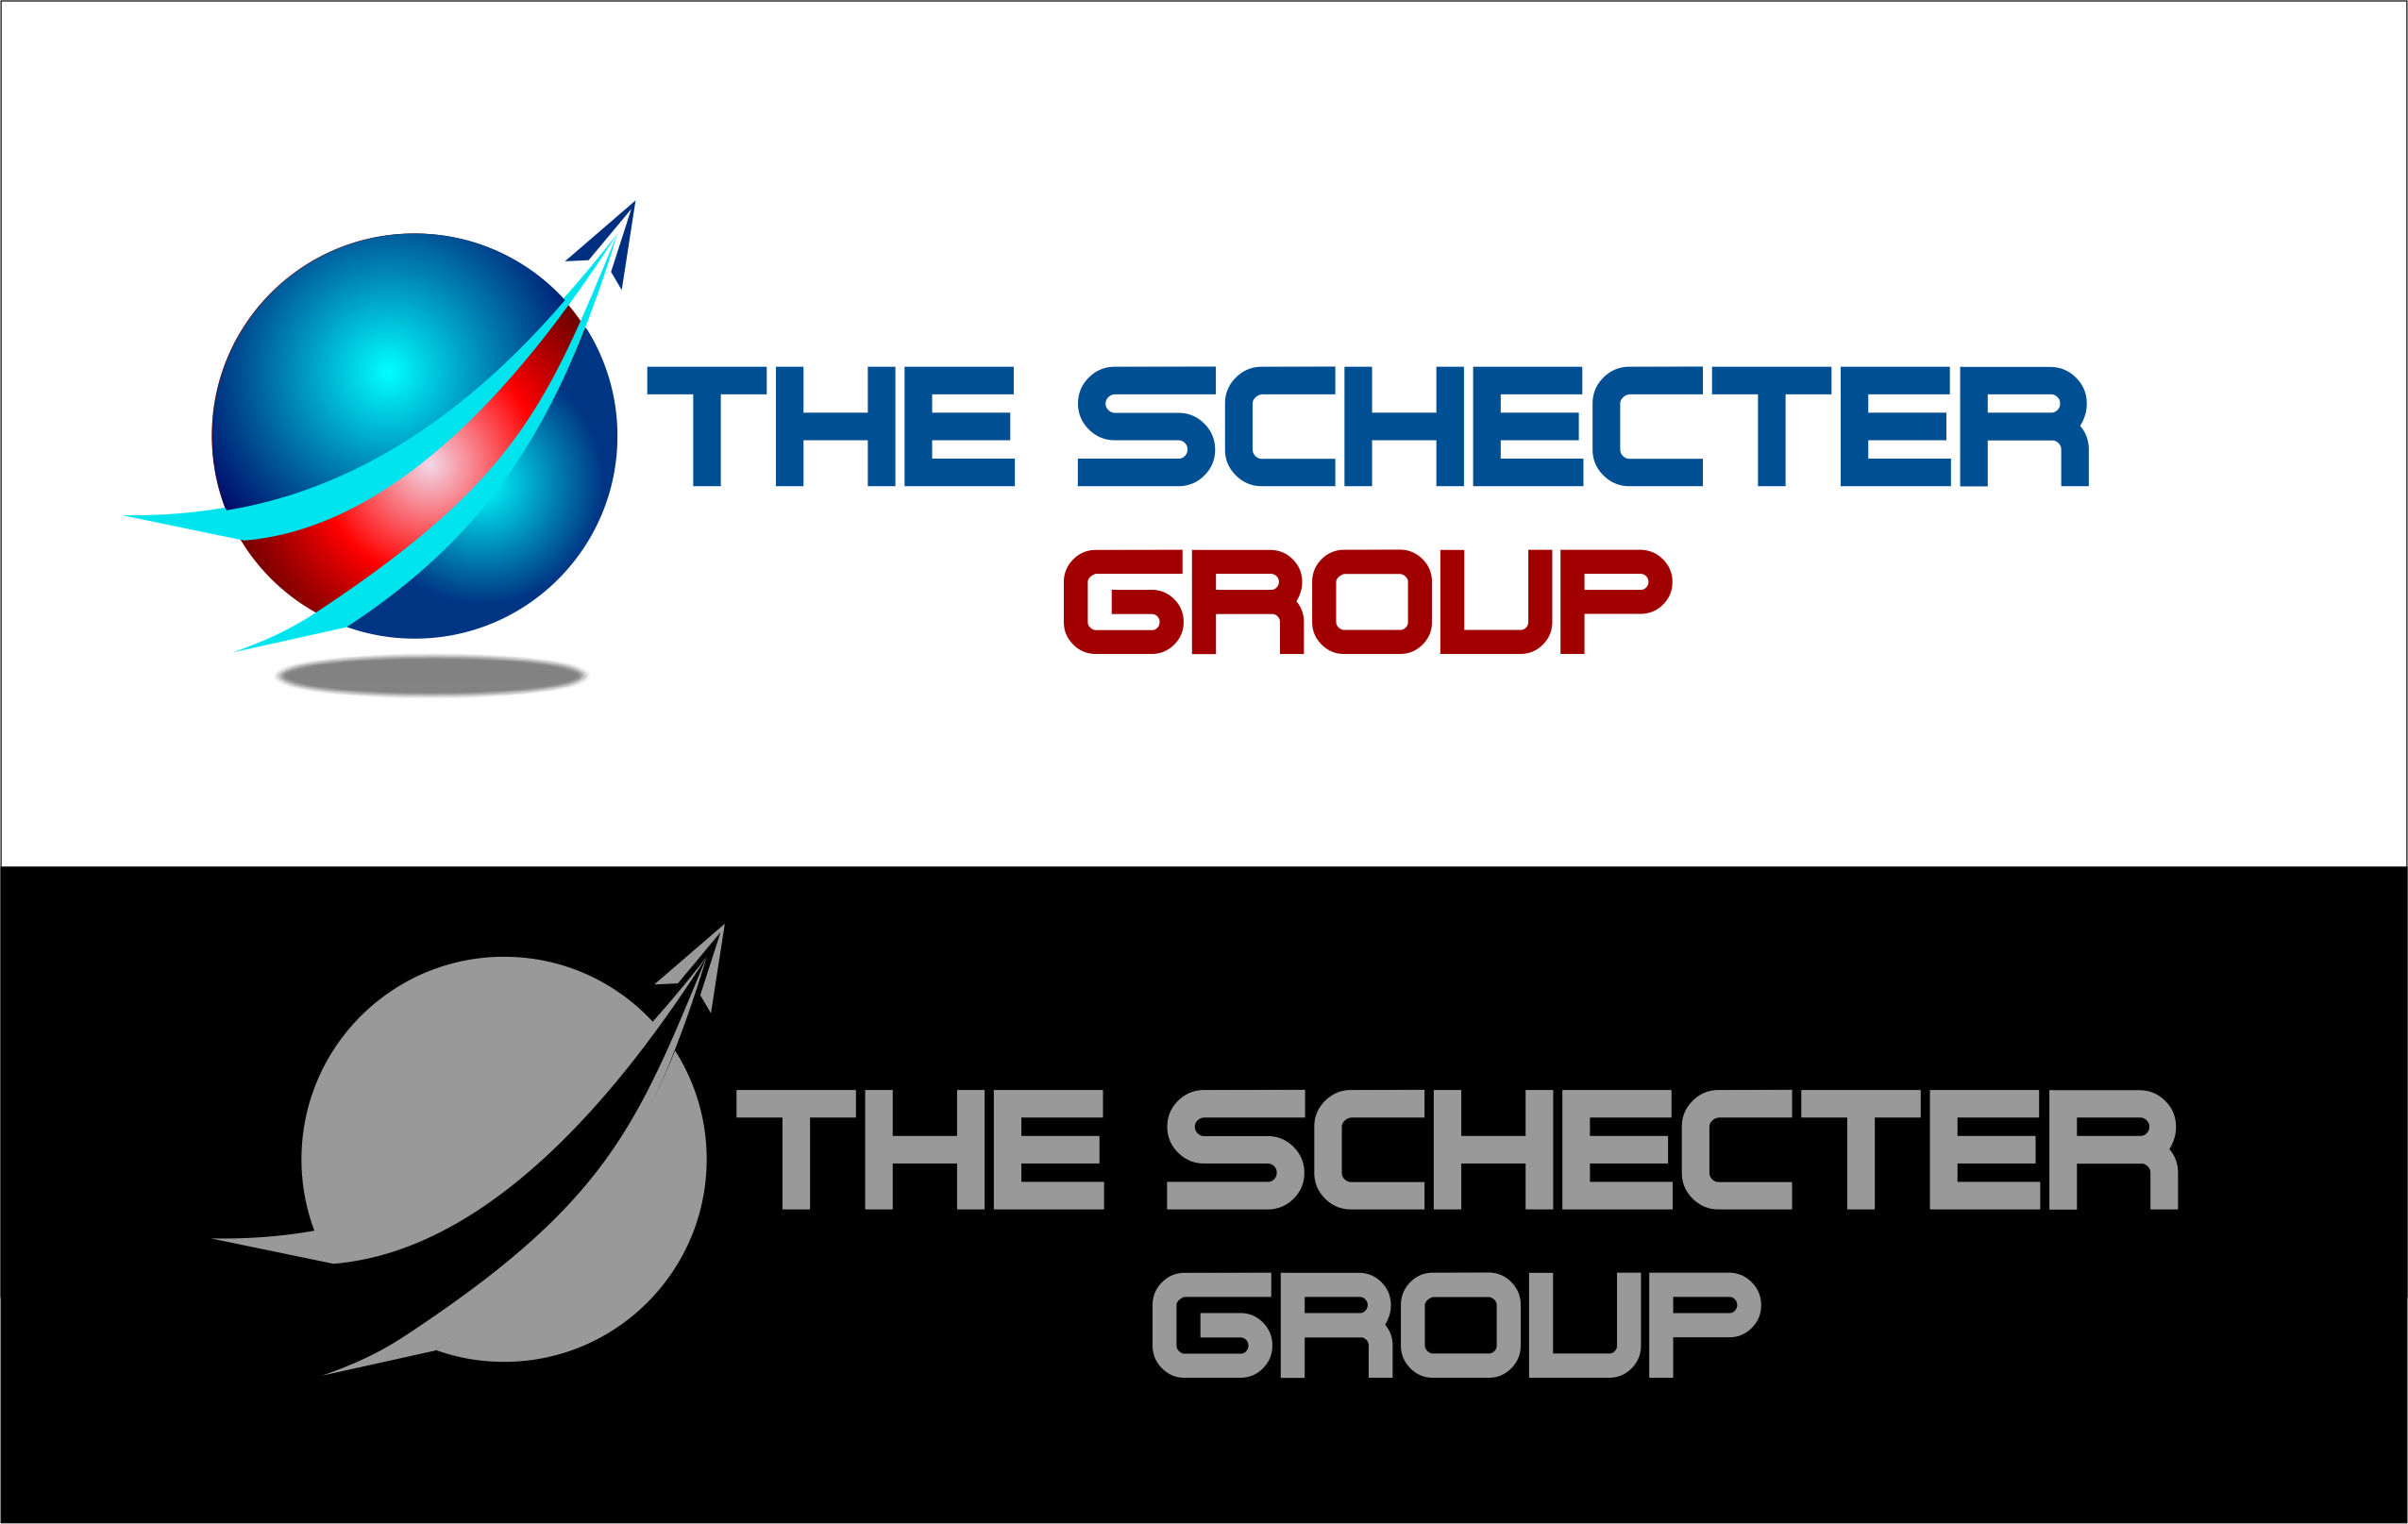 Logo Design by Agus Martoyo - Entry No. 1 in the Logo Design Contest Inspiring Logo Design for The Schecter Group.